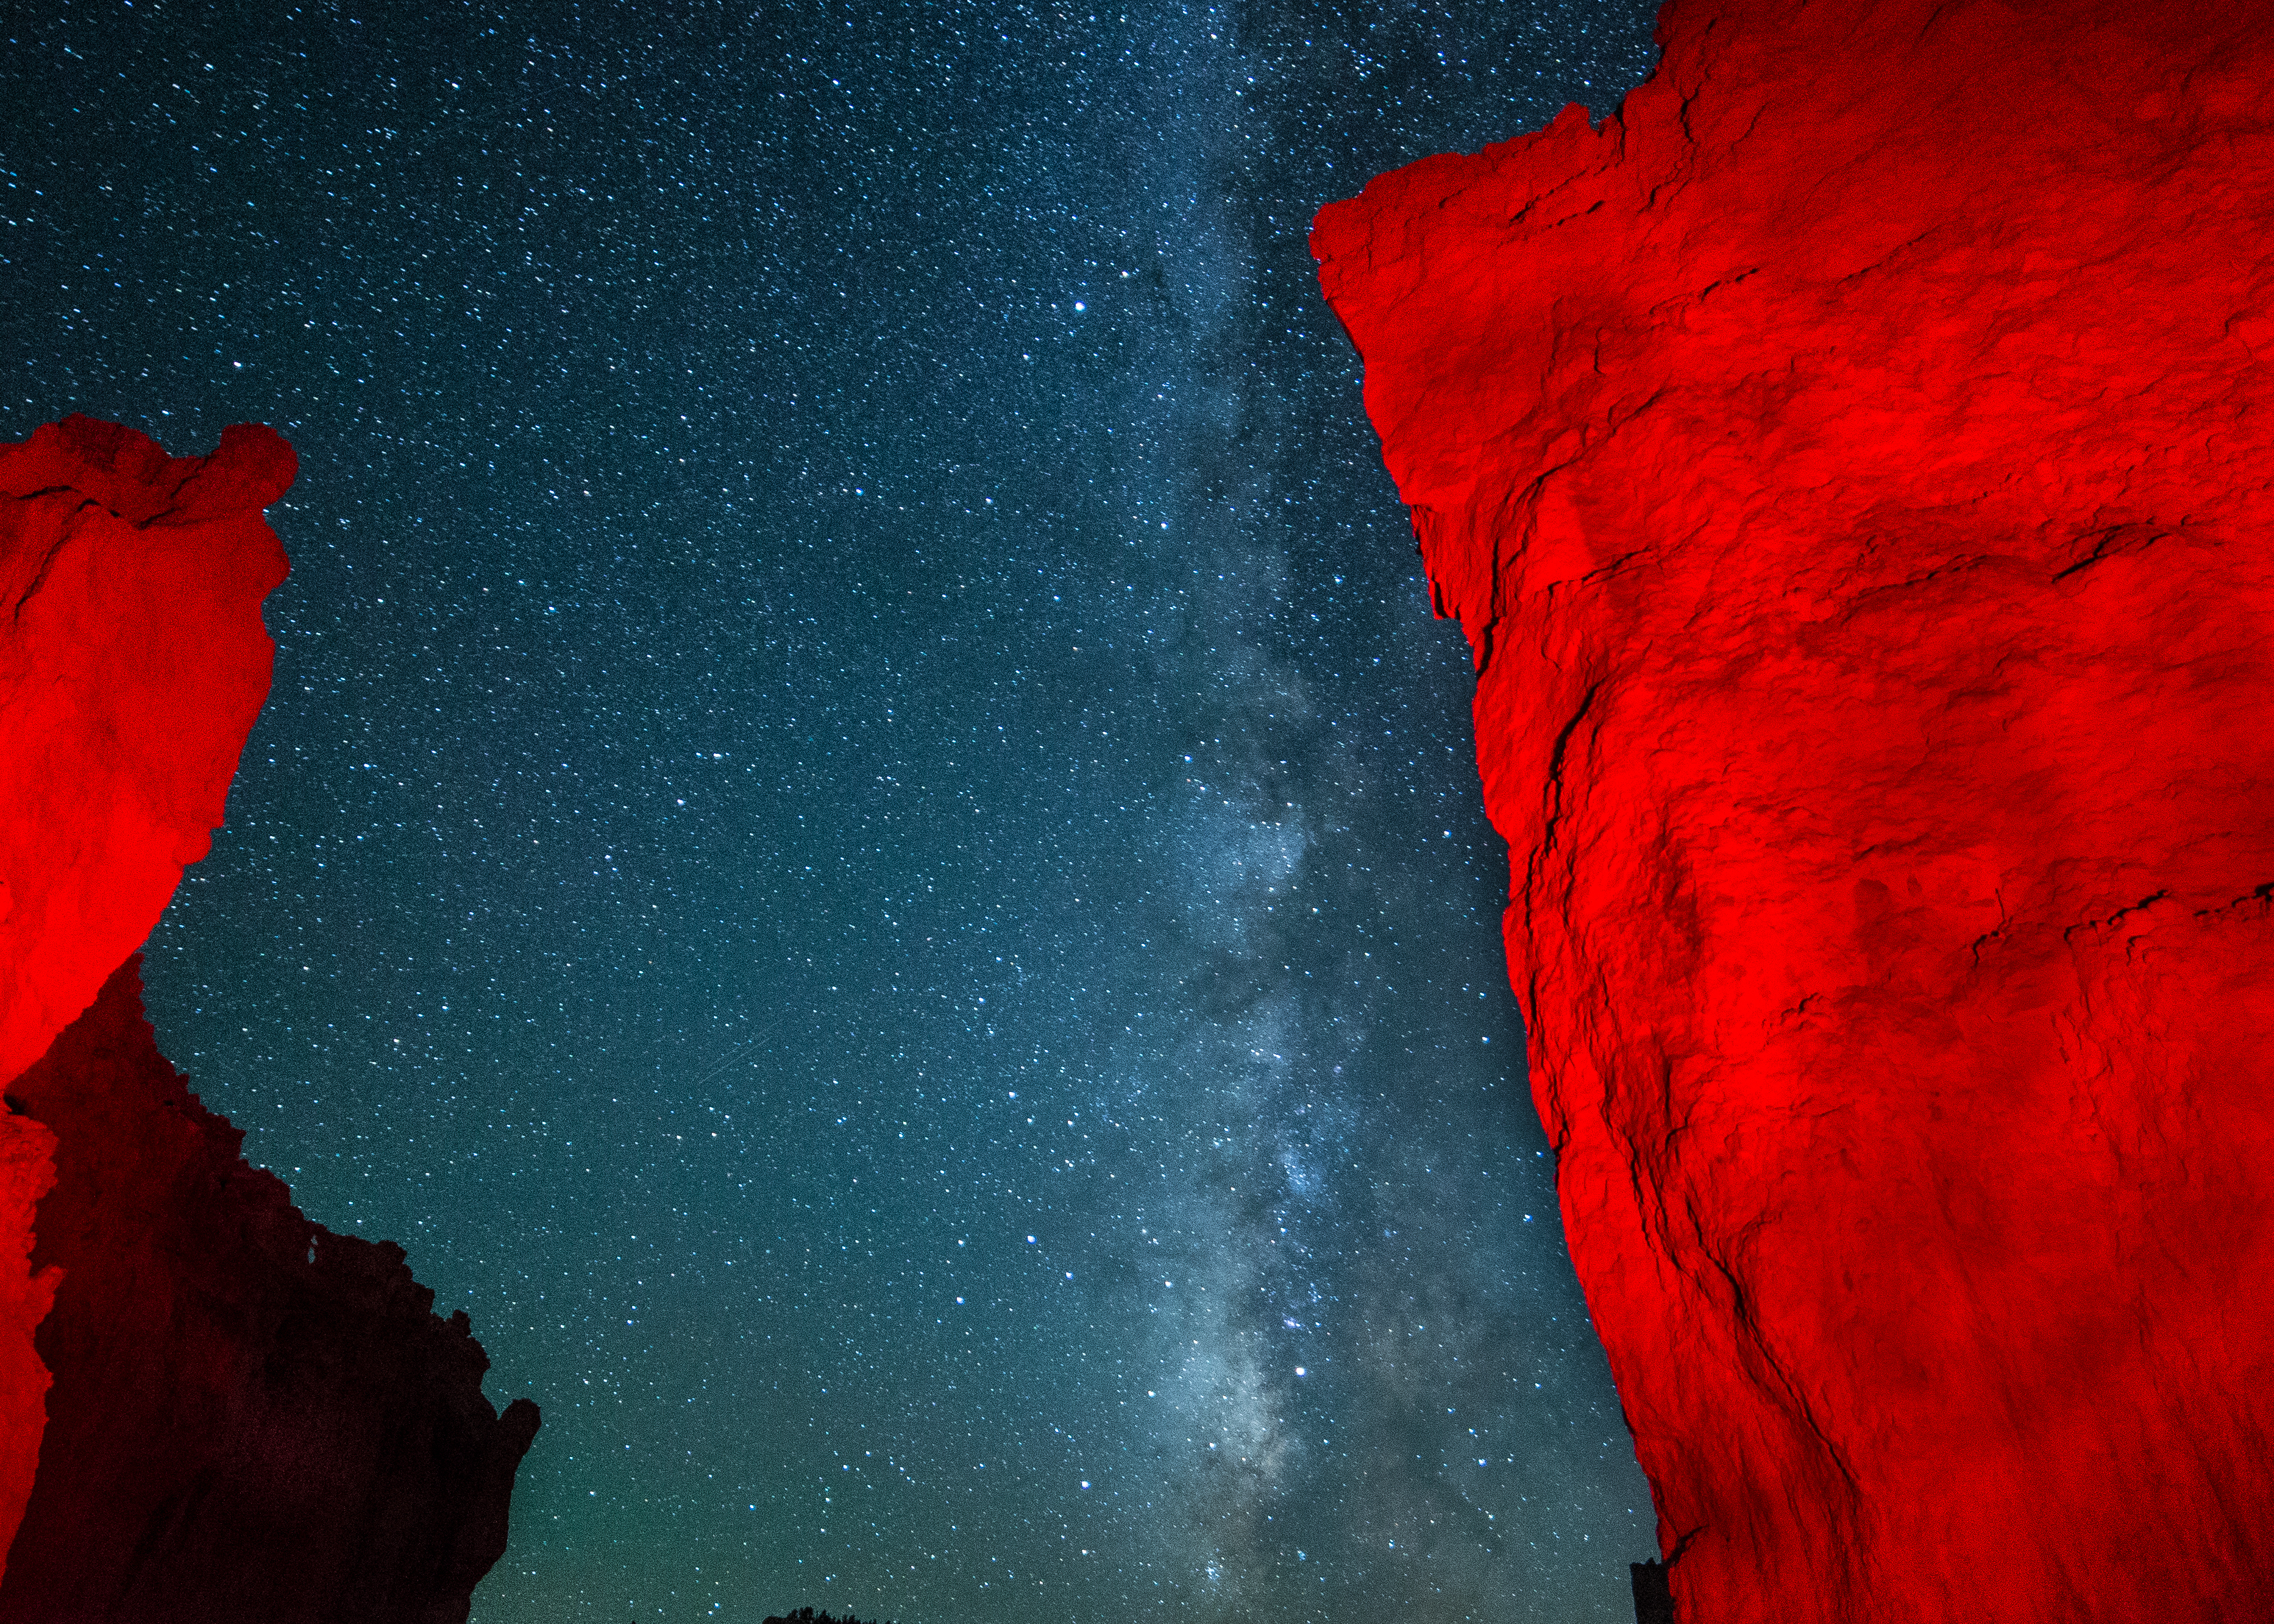 Orange hoodoo against a night sky with the Milky Way